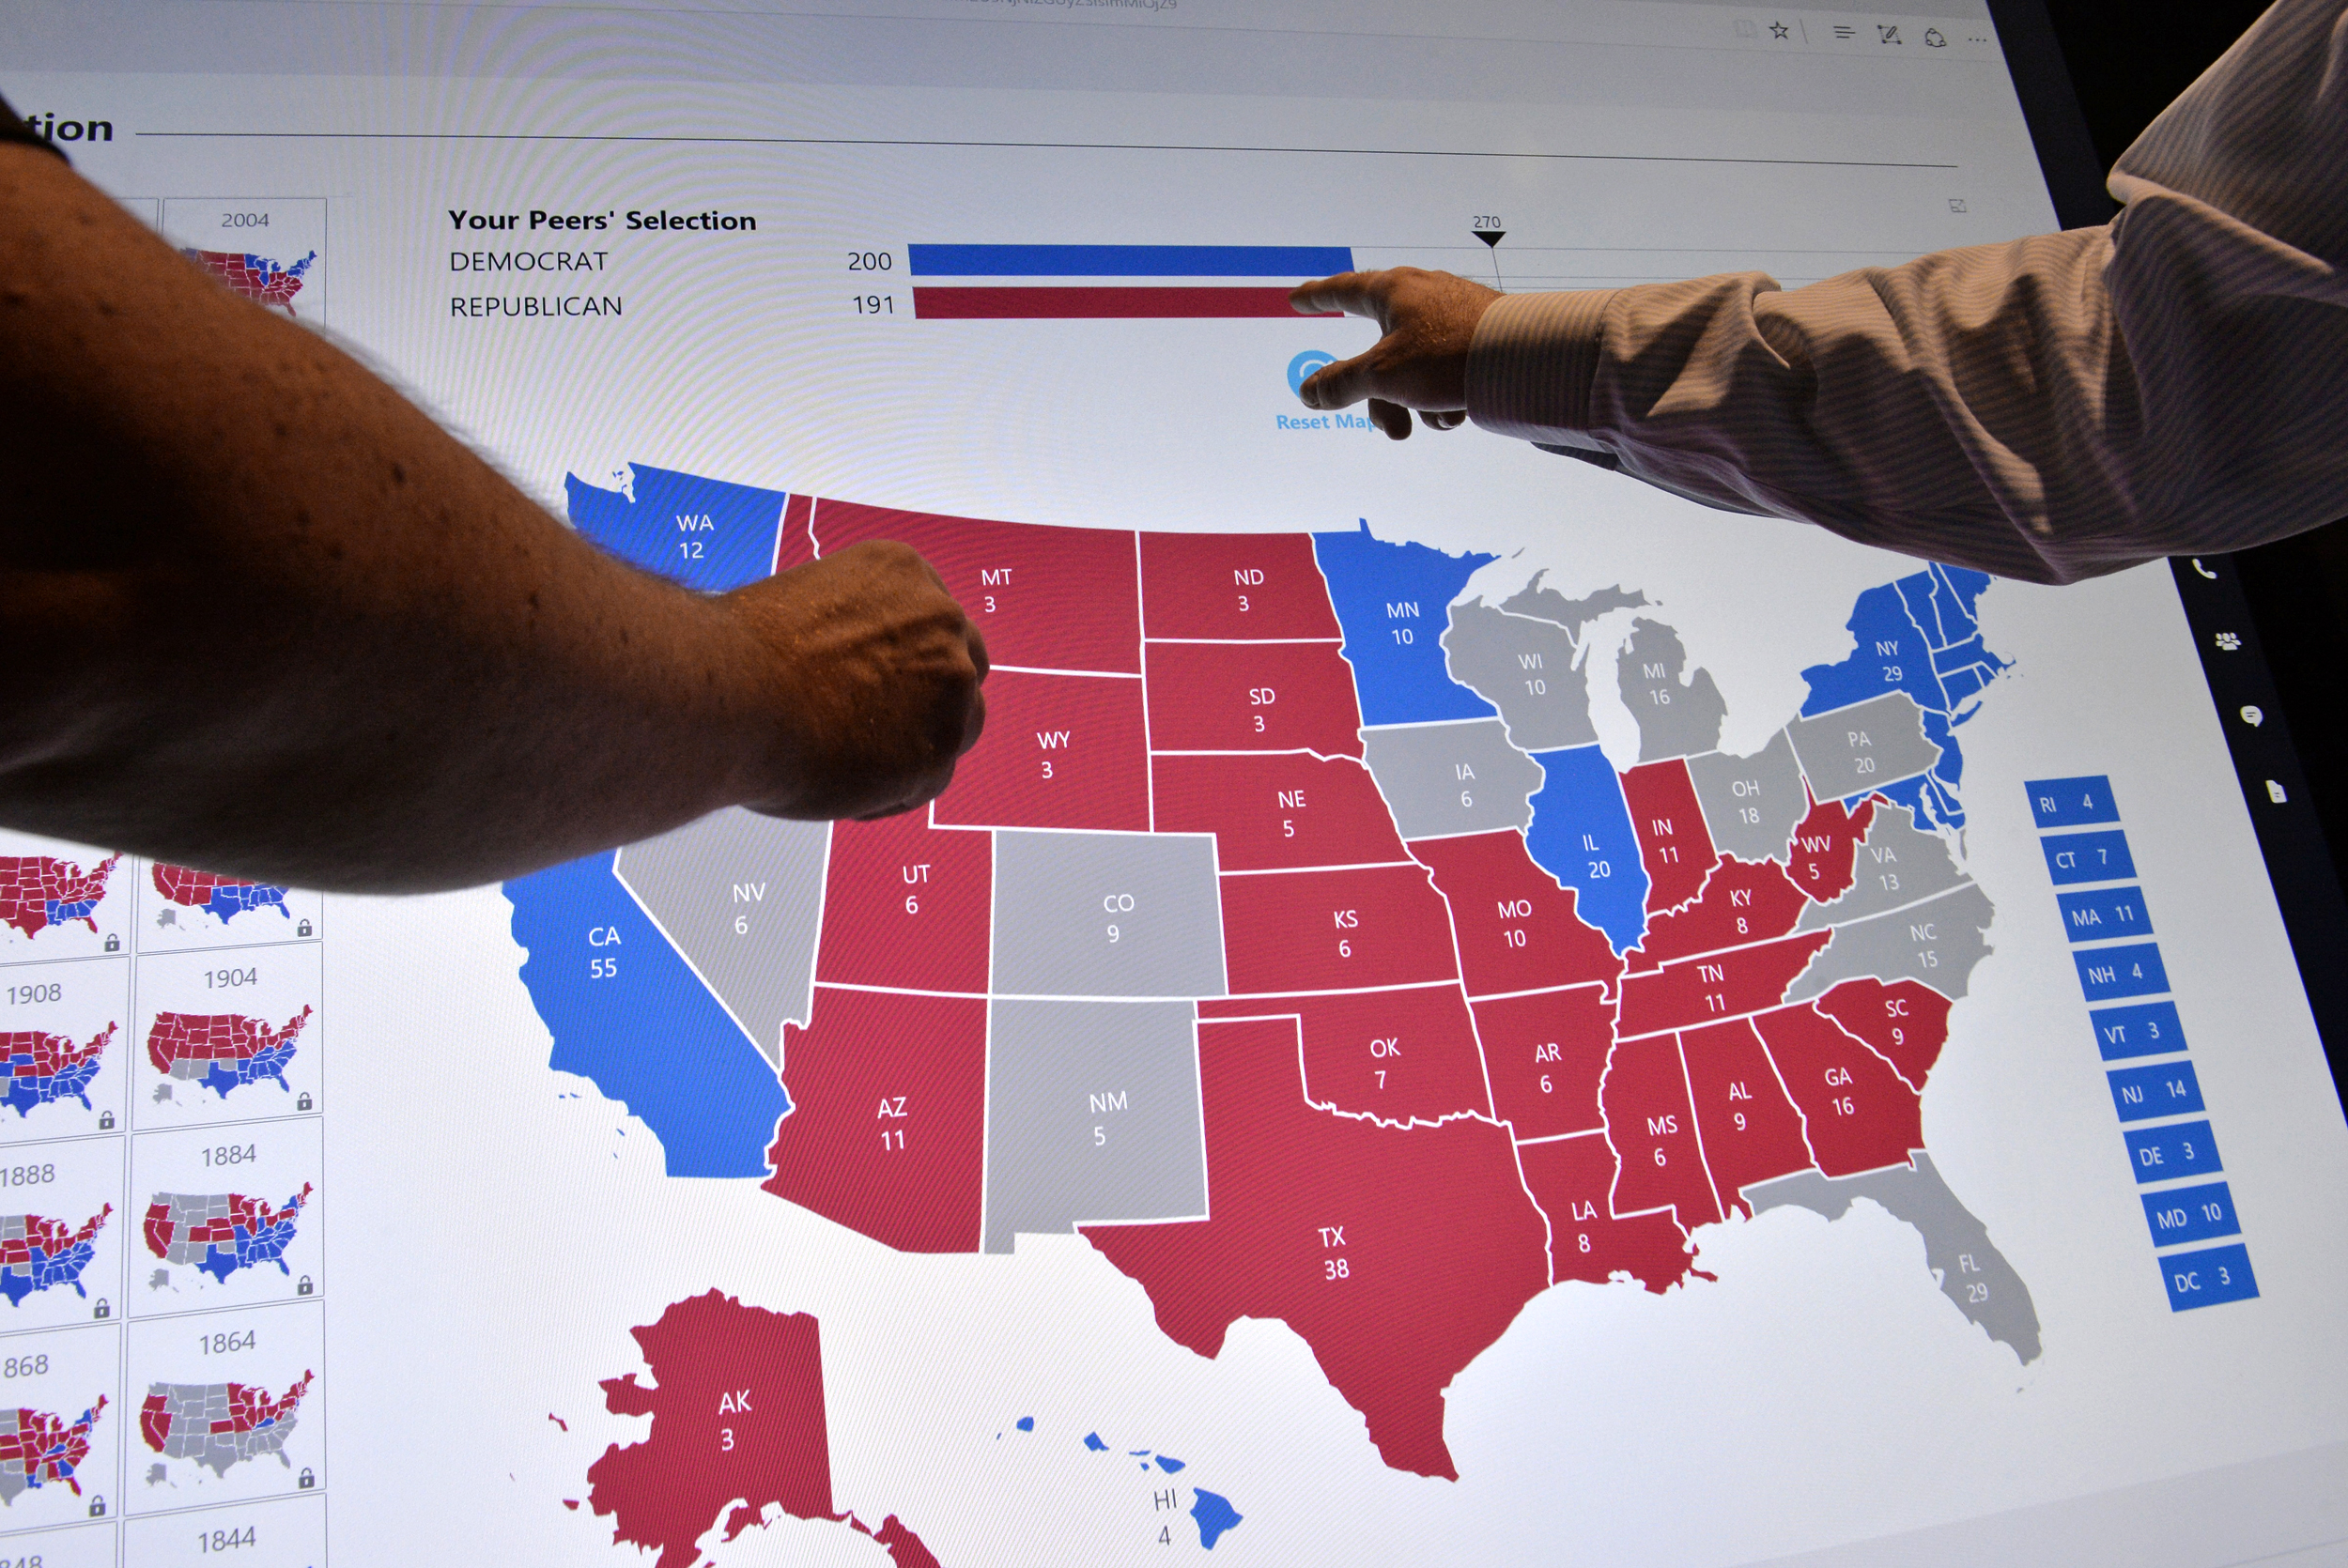 Reworking the Electoral College might not change the results